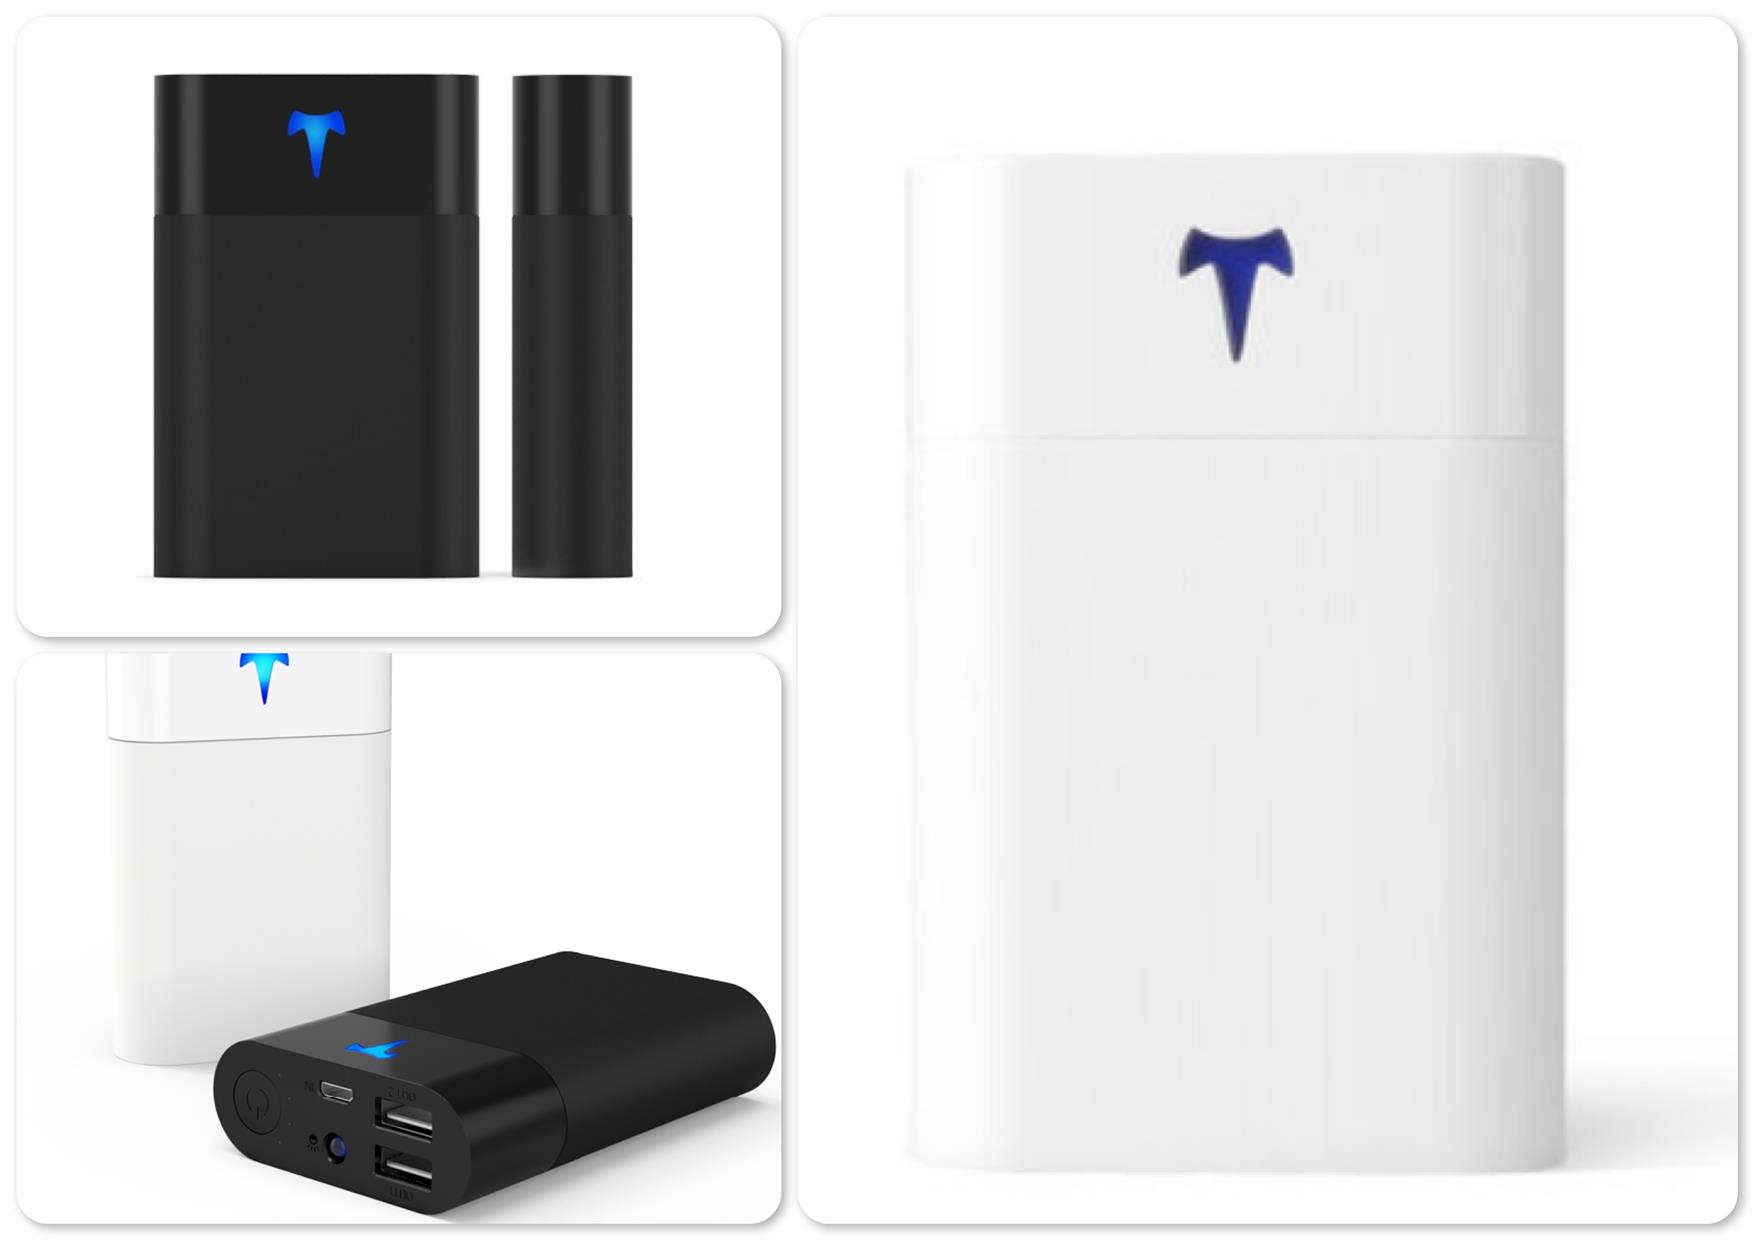 Bdotcom = Yoobao Telsa 10200 mAh Power Bank - YB-T1